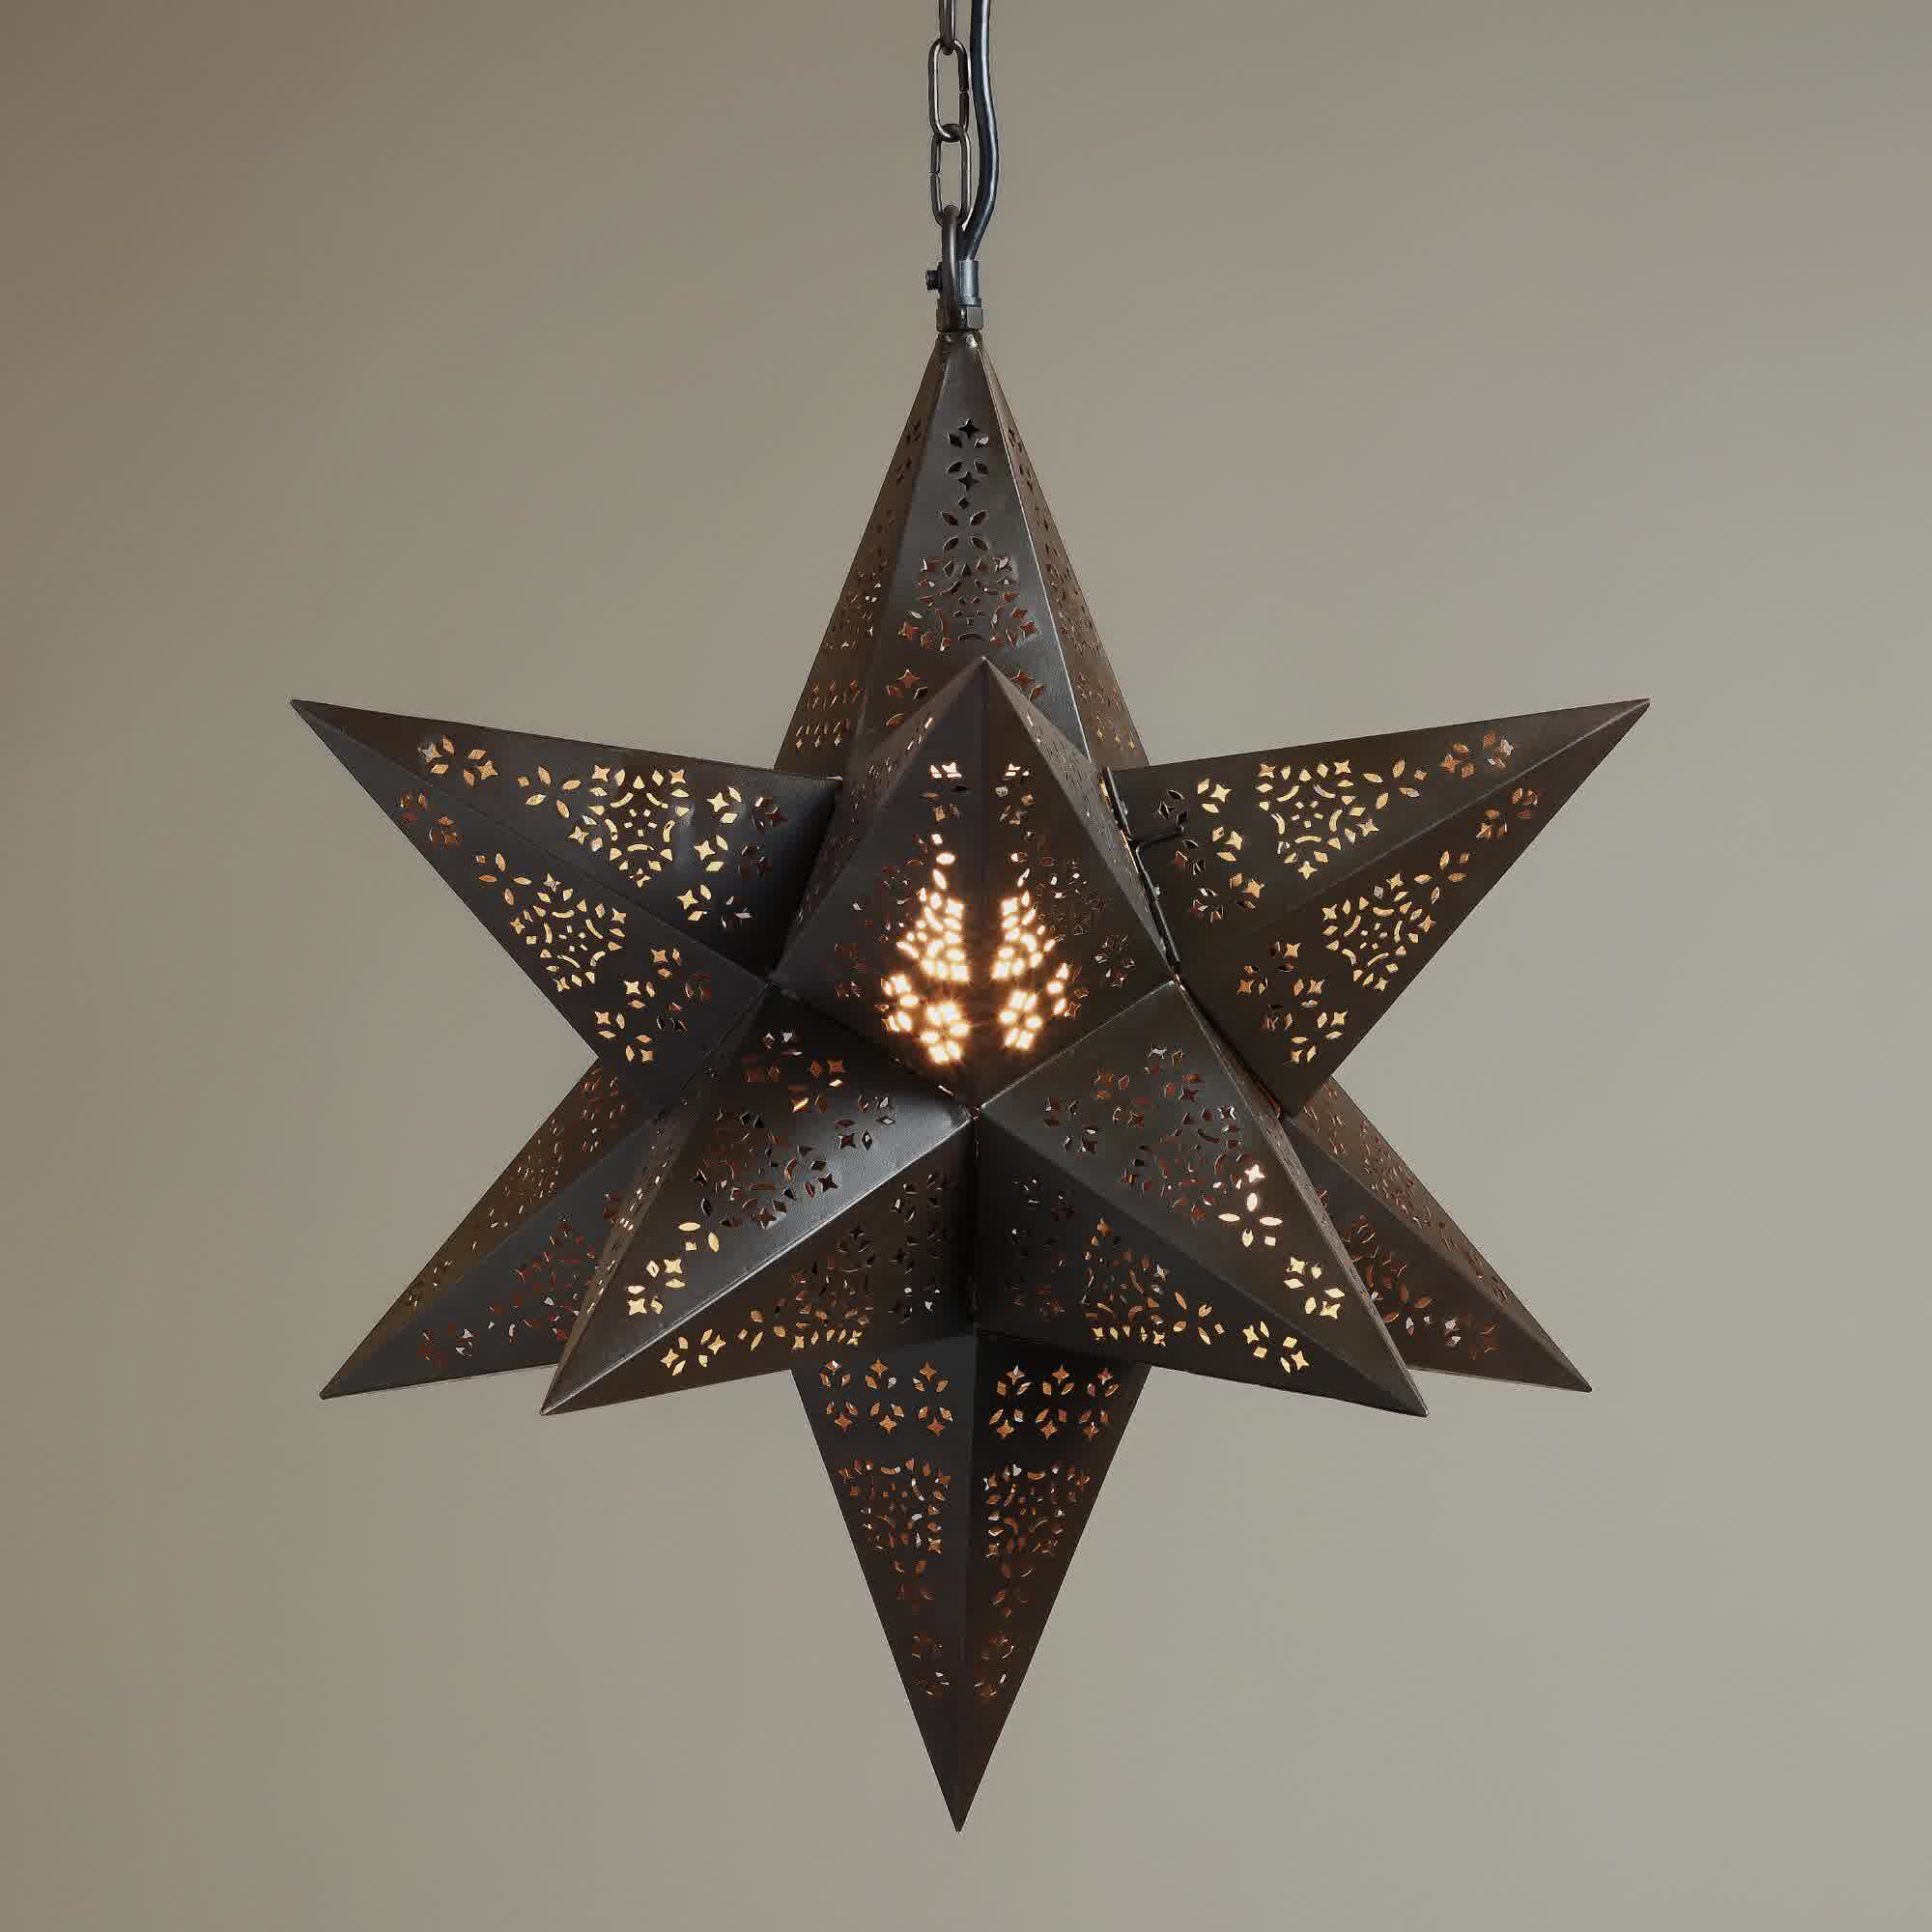 Moravian Star Pendant Light Fixture That Will Brighten